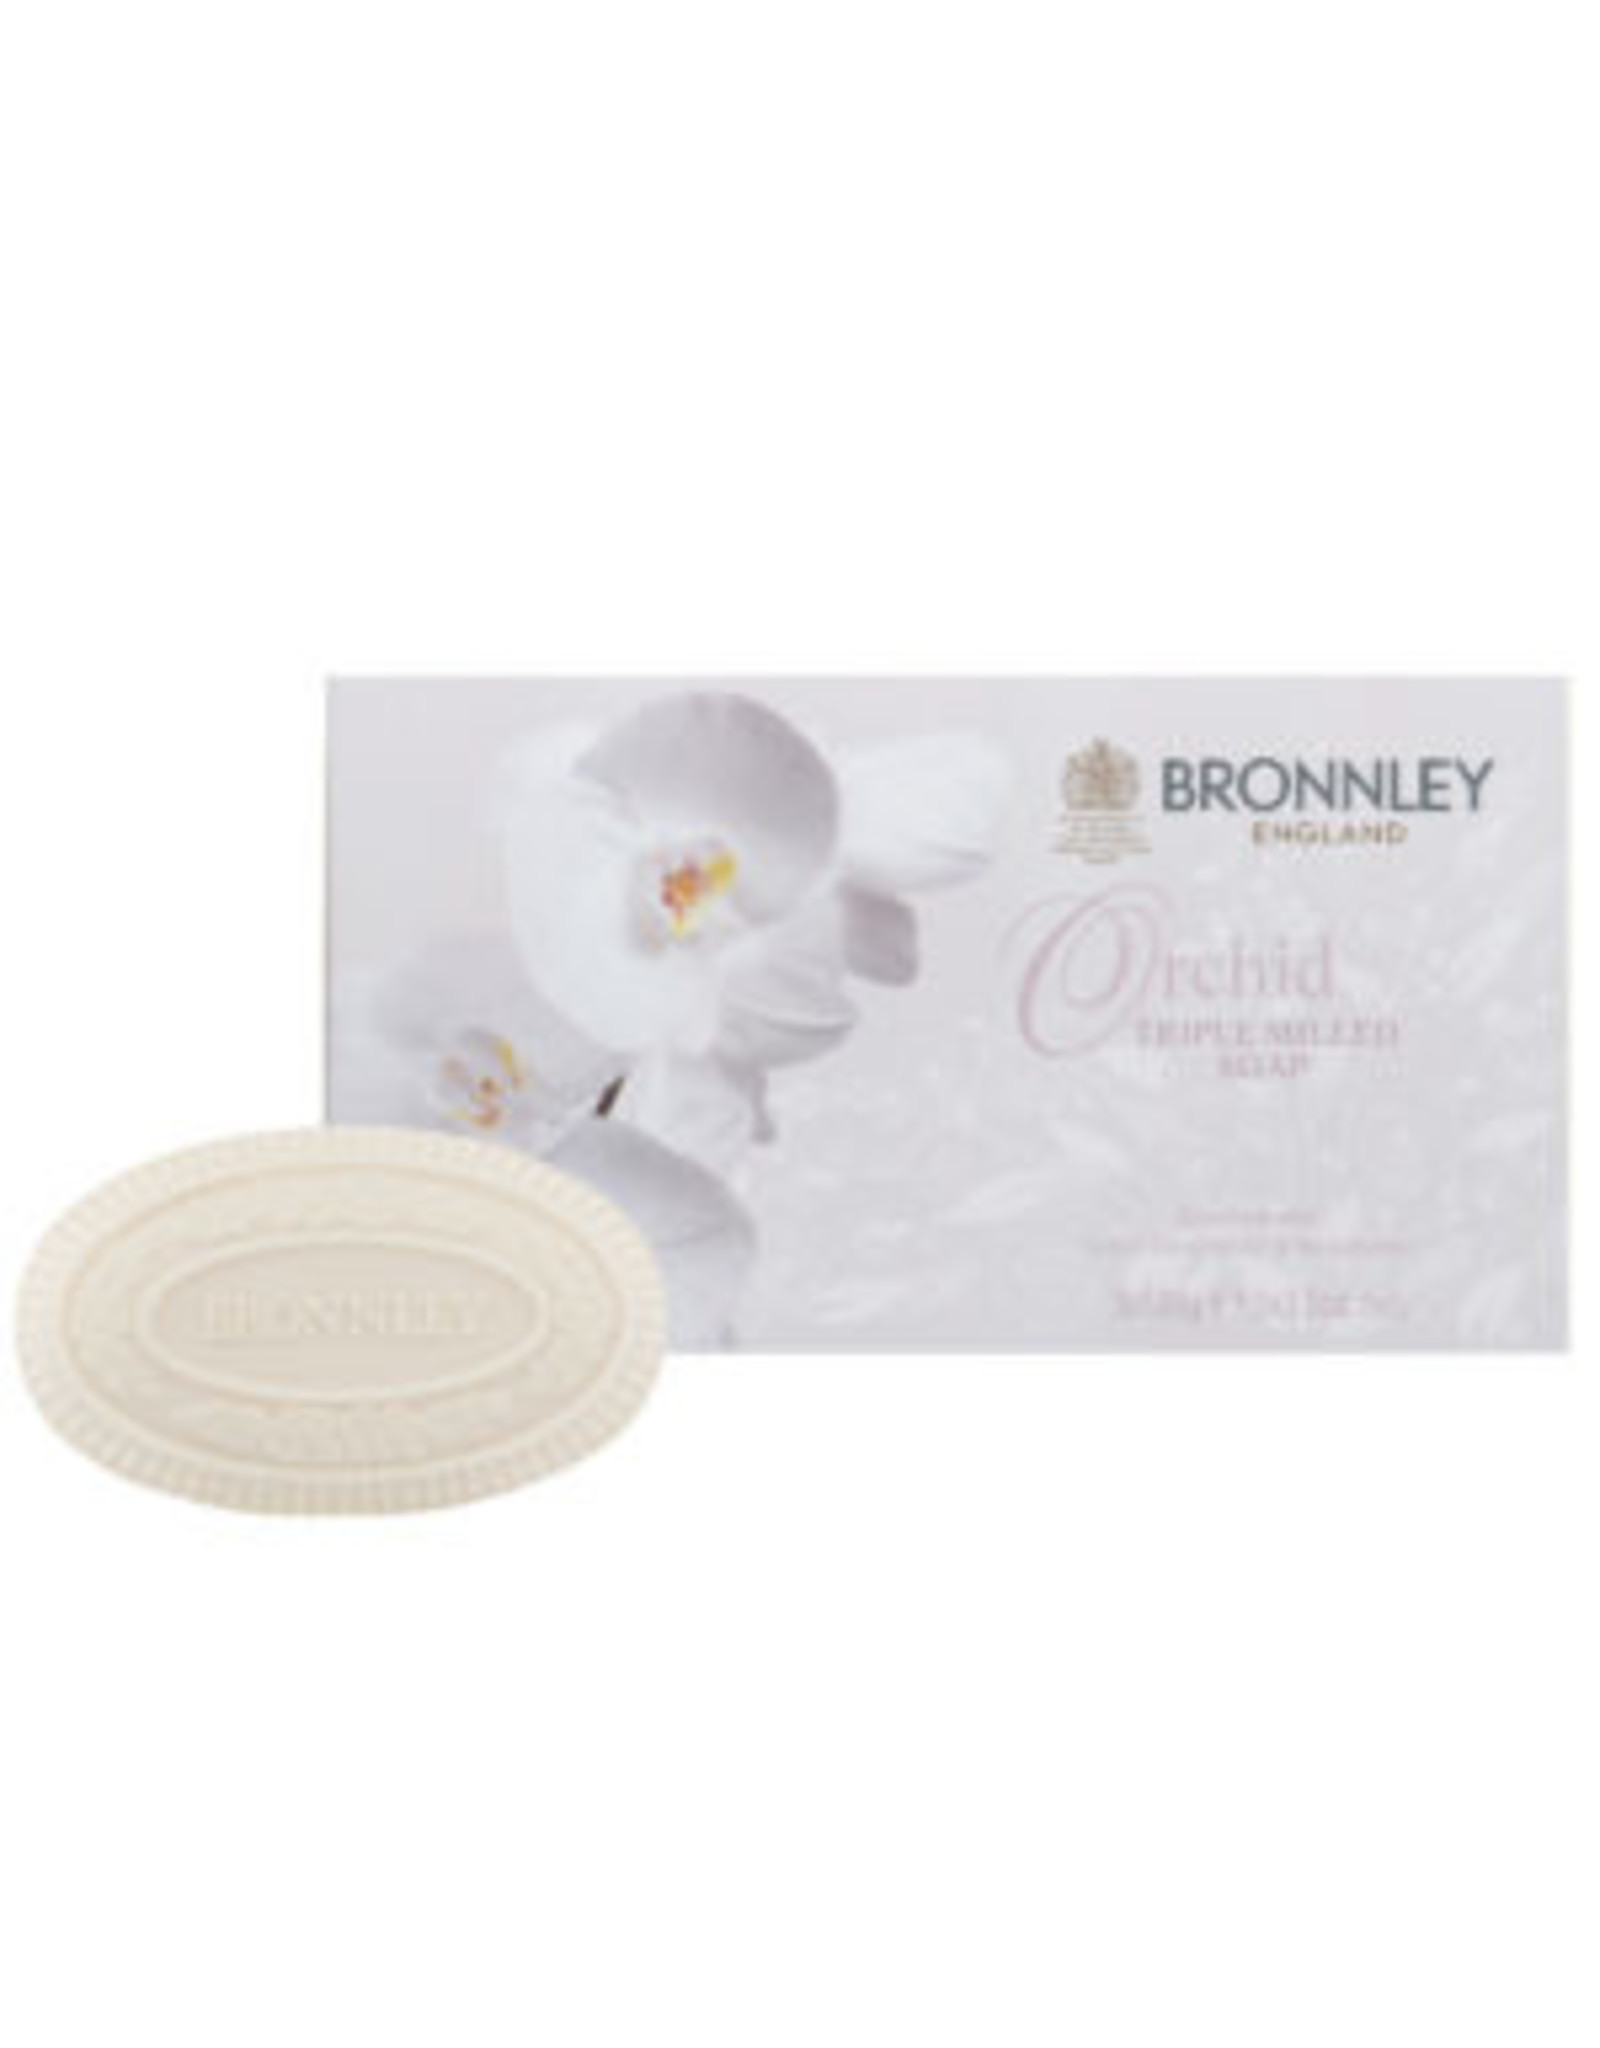 Bronnley Orchid – Triple Milled Soap Collection